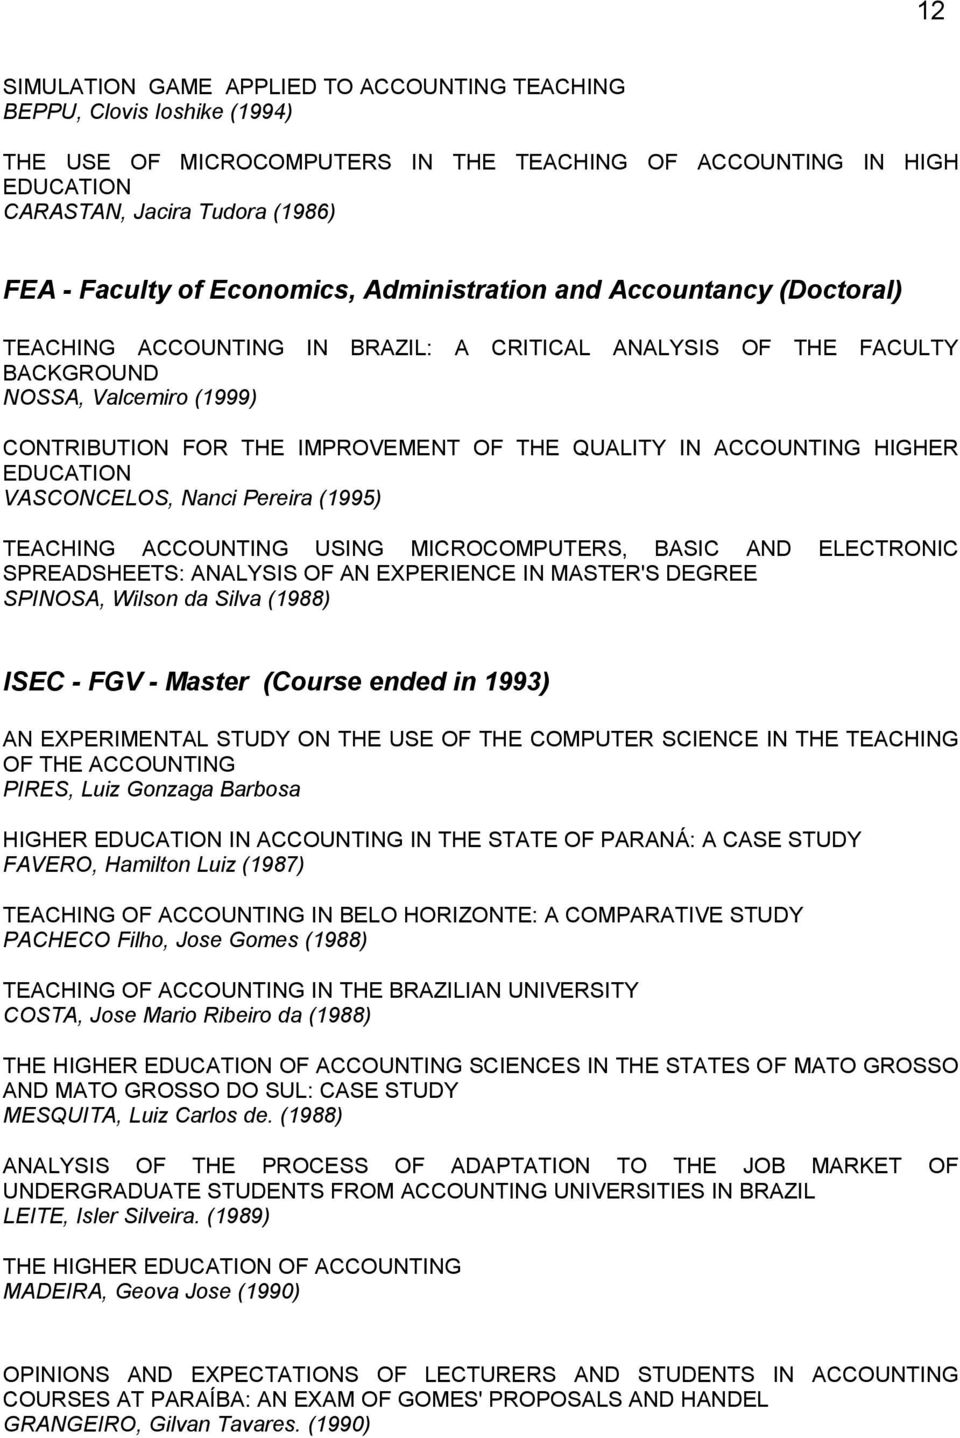 QUALITY IN ACCOUNTING HIGHER EDUCATION VASCONCELOS, Nanci Pereira (1995) TEACHING ACCOUNTING USING MICROCOMPUTERS, BASIC AND ELECTRONIC SPREADSHEETS: ANALYSIS OF AN EXPERIENCE IN MASTER'S DEGREE